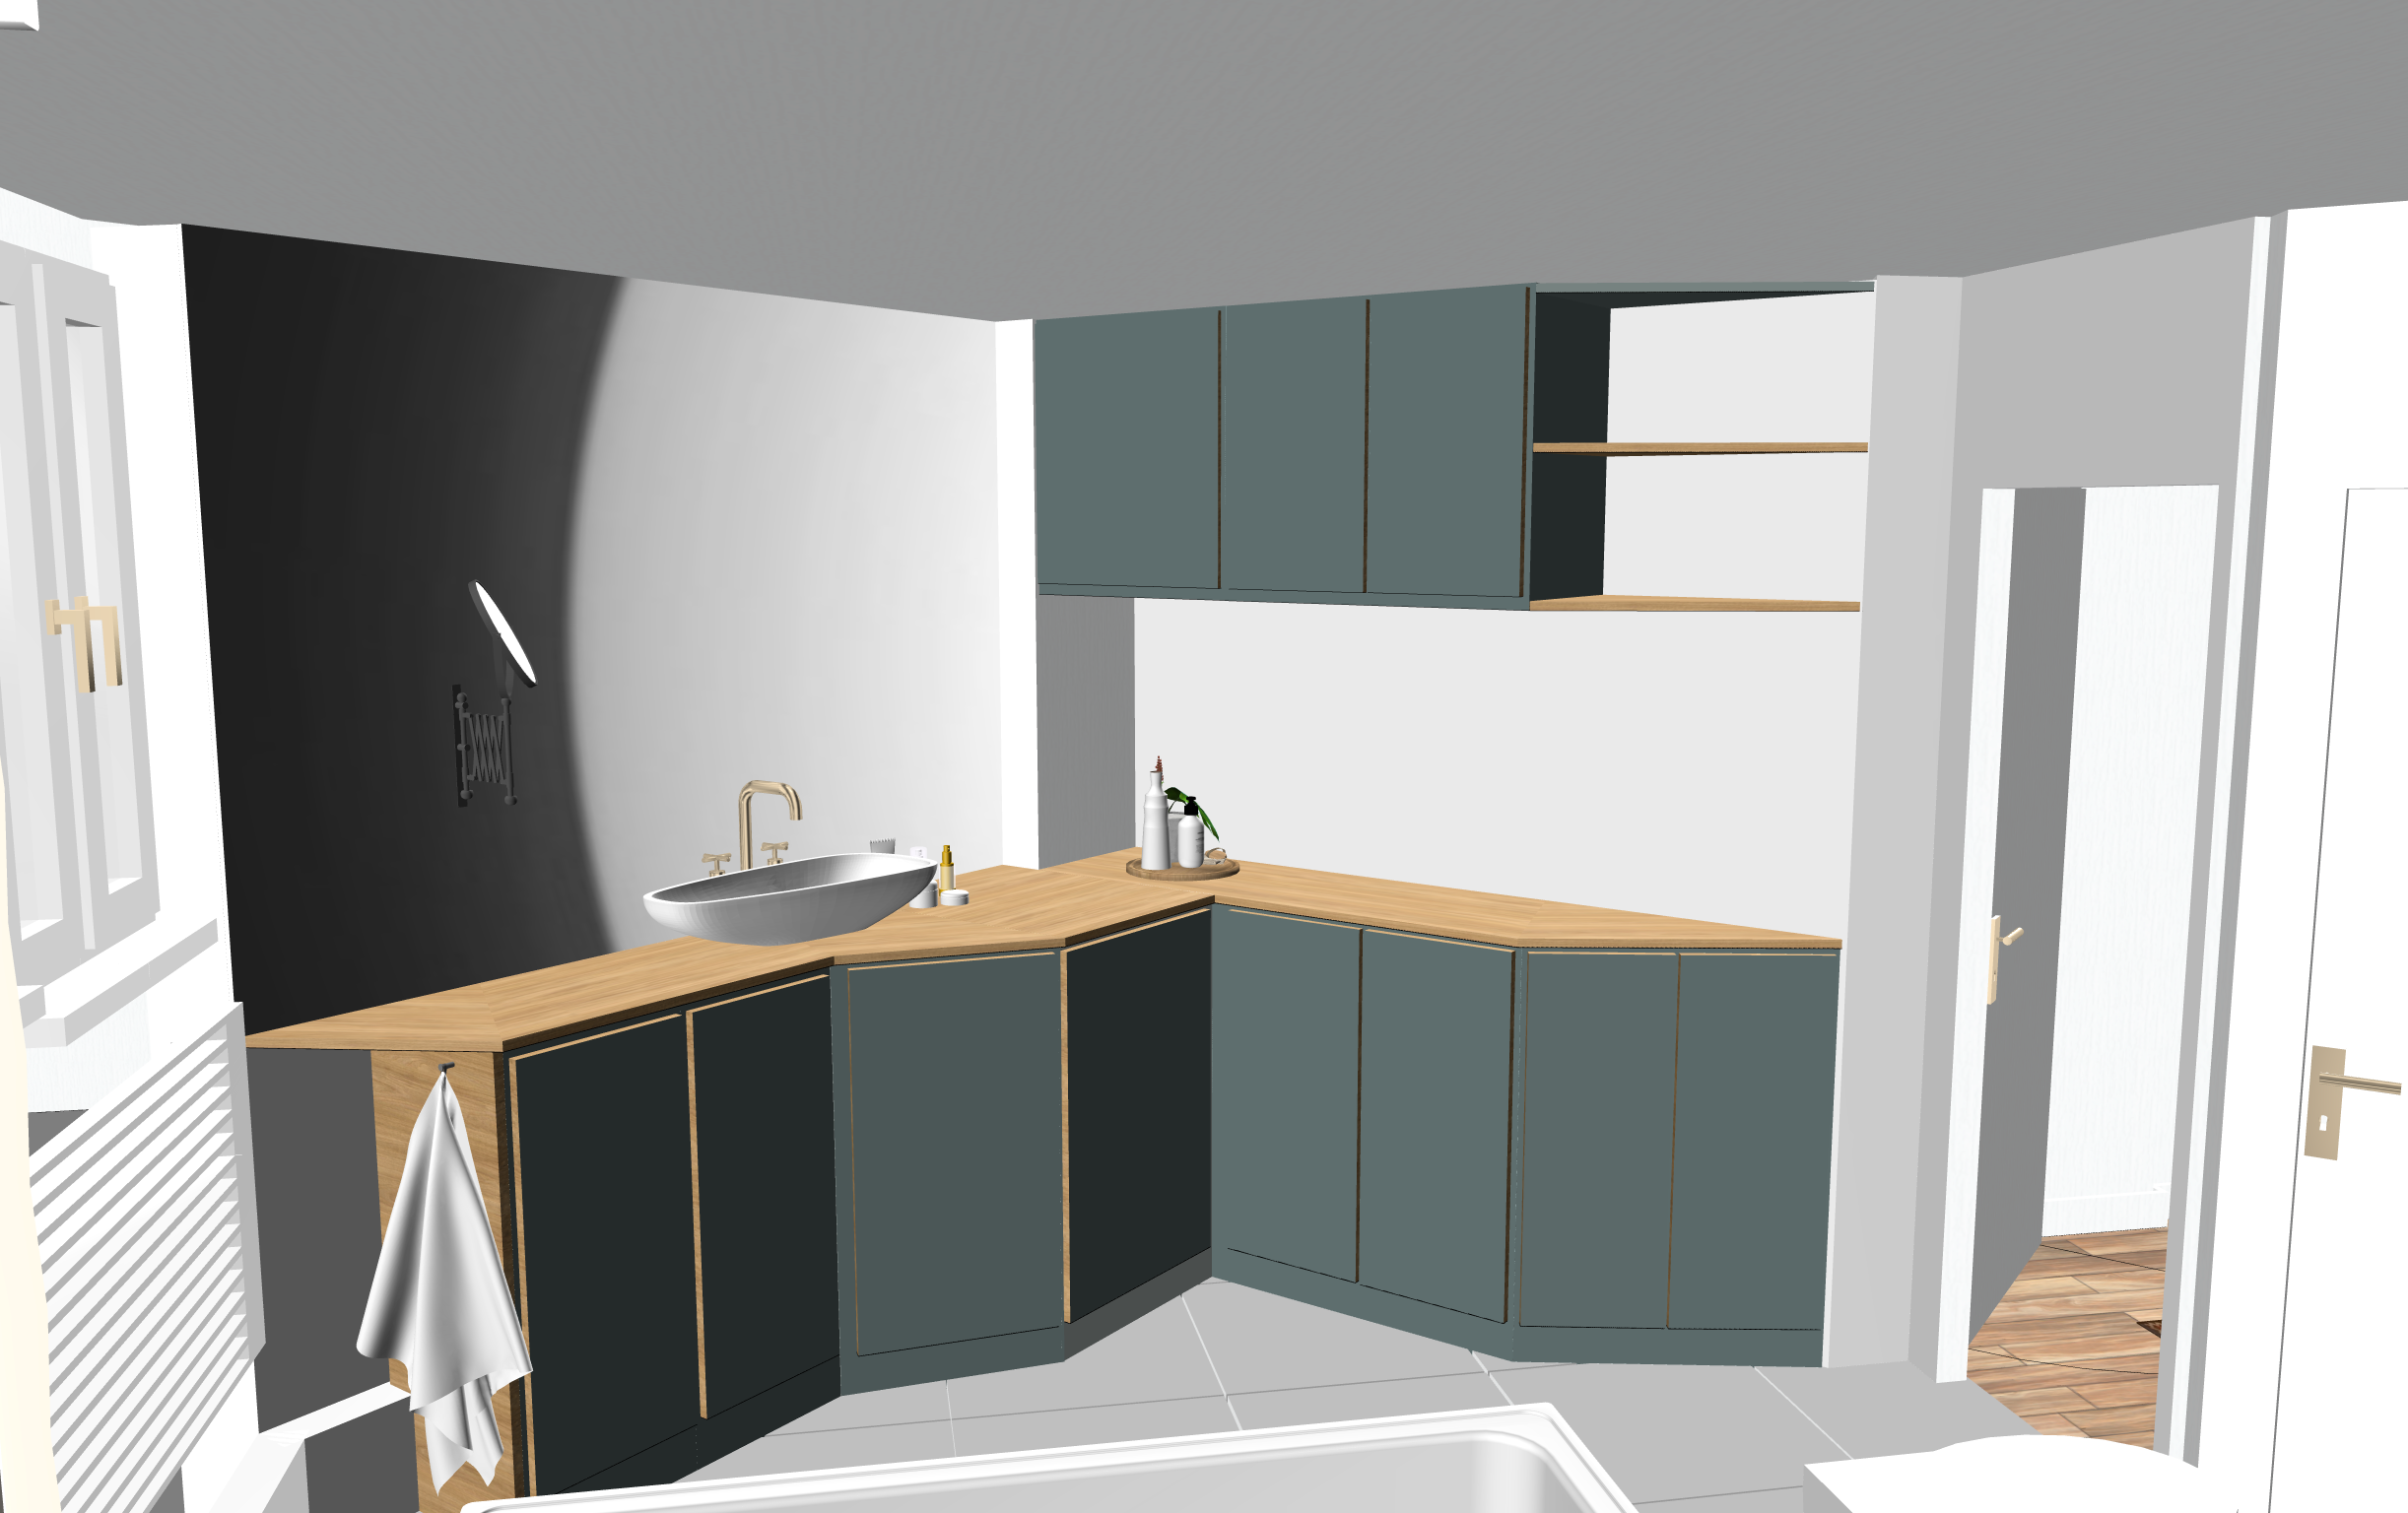 maison_bou_2019_neuilly_3d_10.png